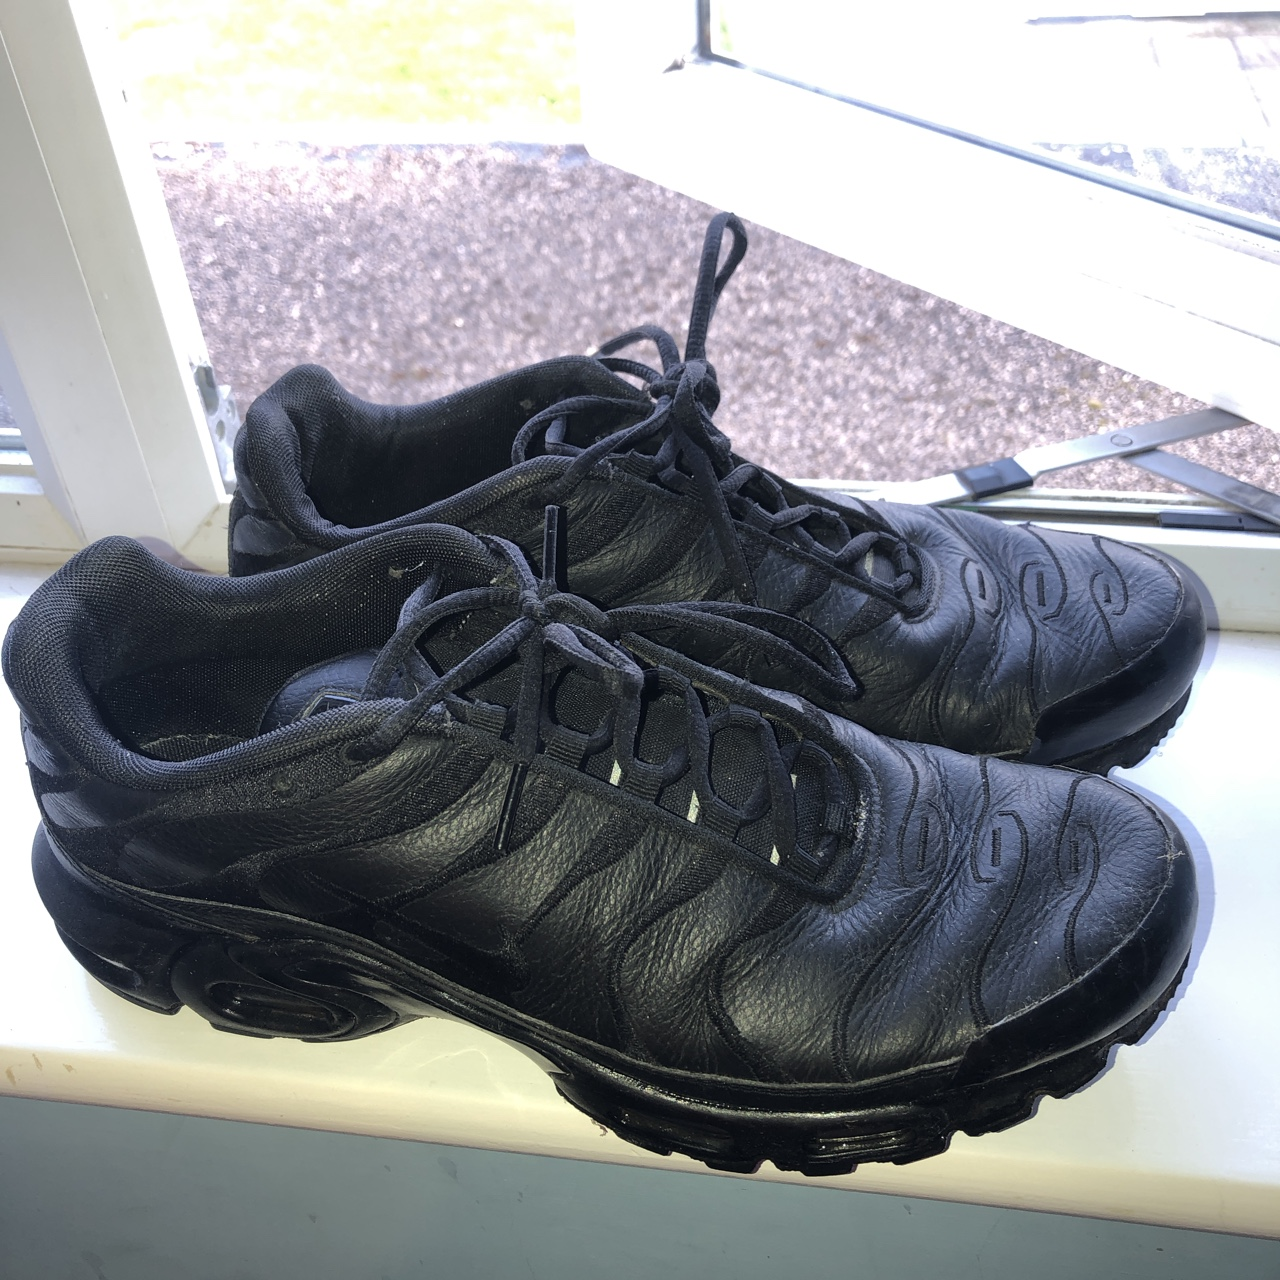 recepción consumo auge  Nike Air max tn (tuned 1) Leather all black Such a... - Depop